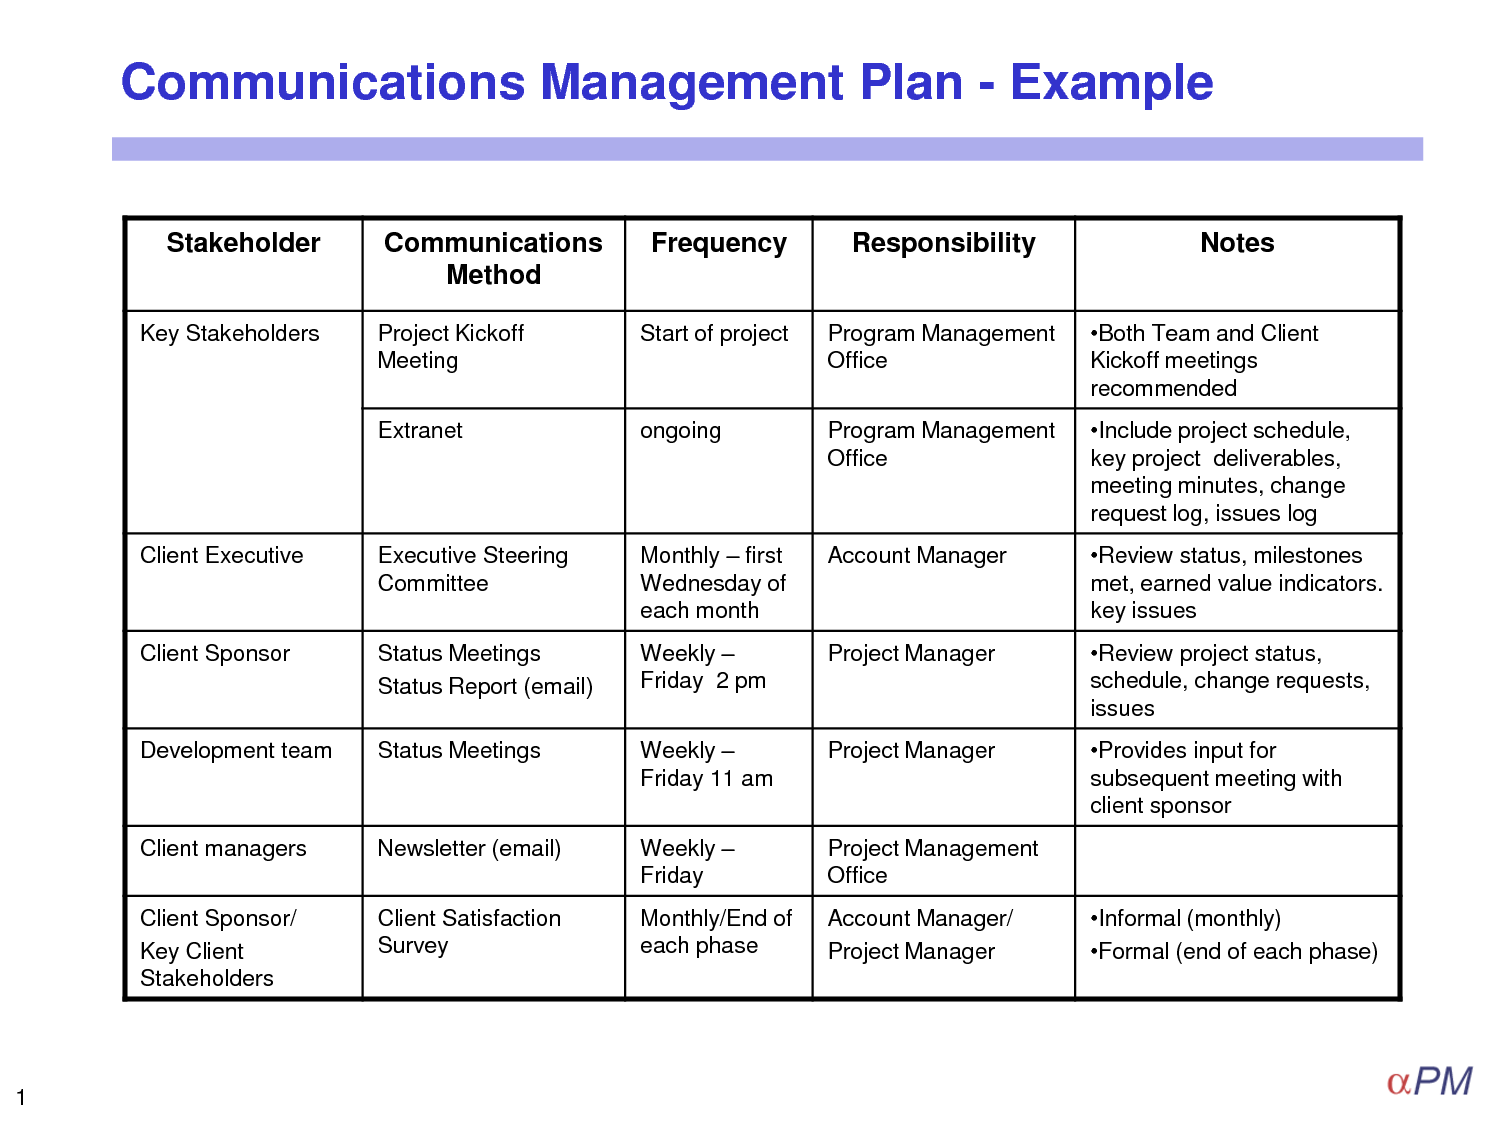 29 Images of Template Communications Management Plan | helmettown.com